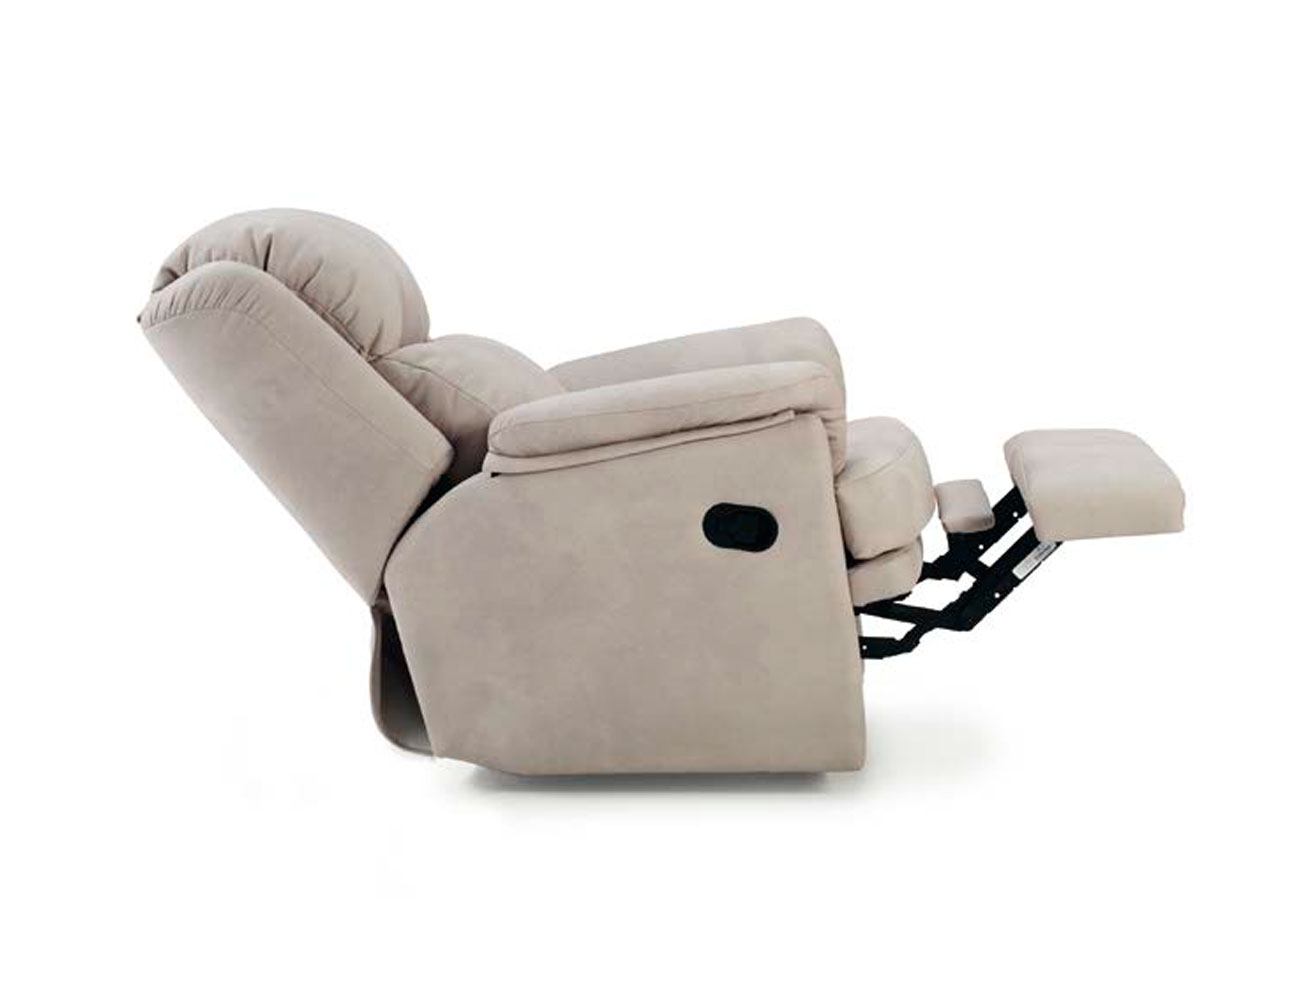 Sillon relax manual palanca esther 124